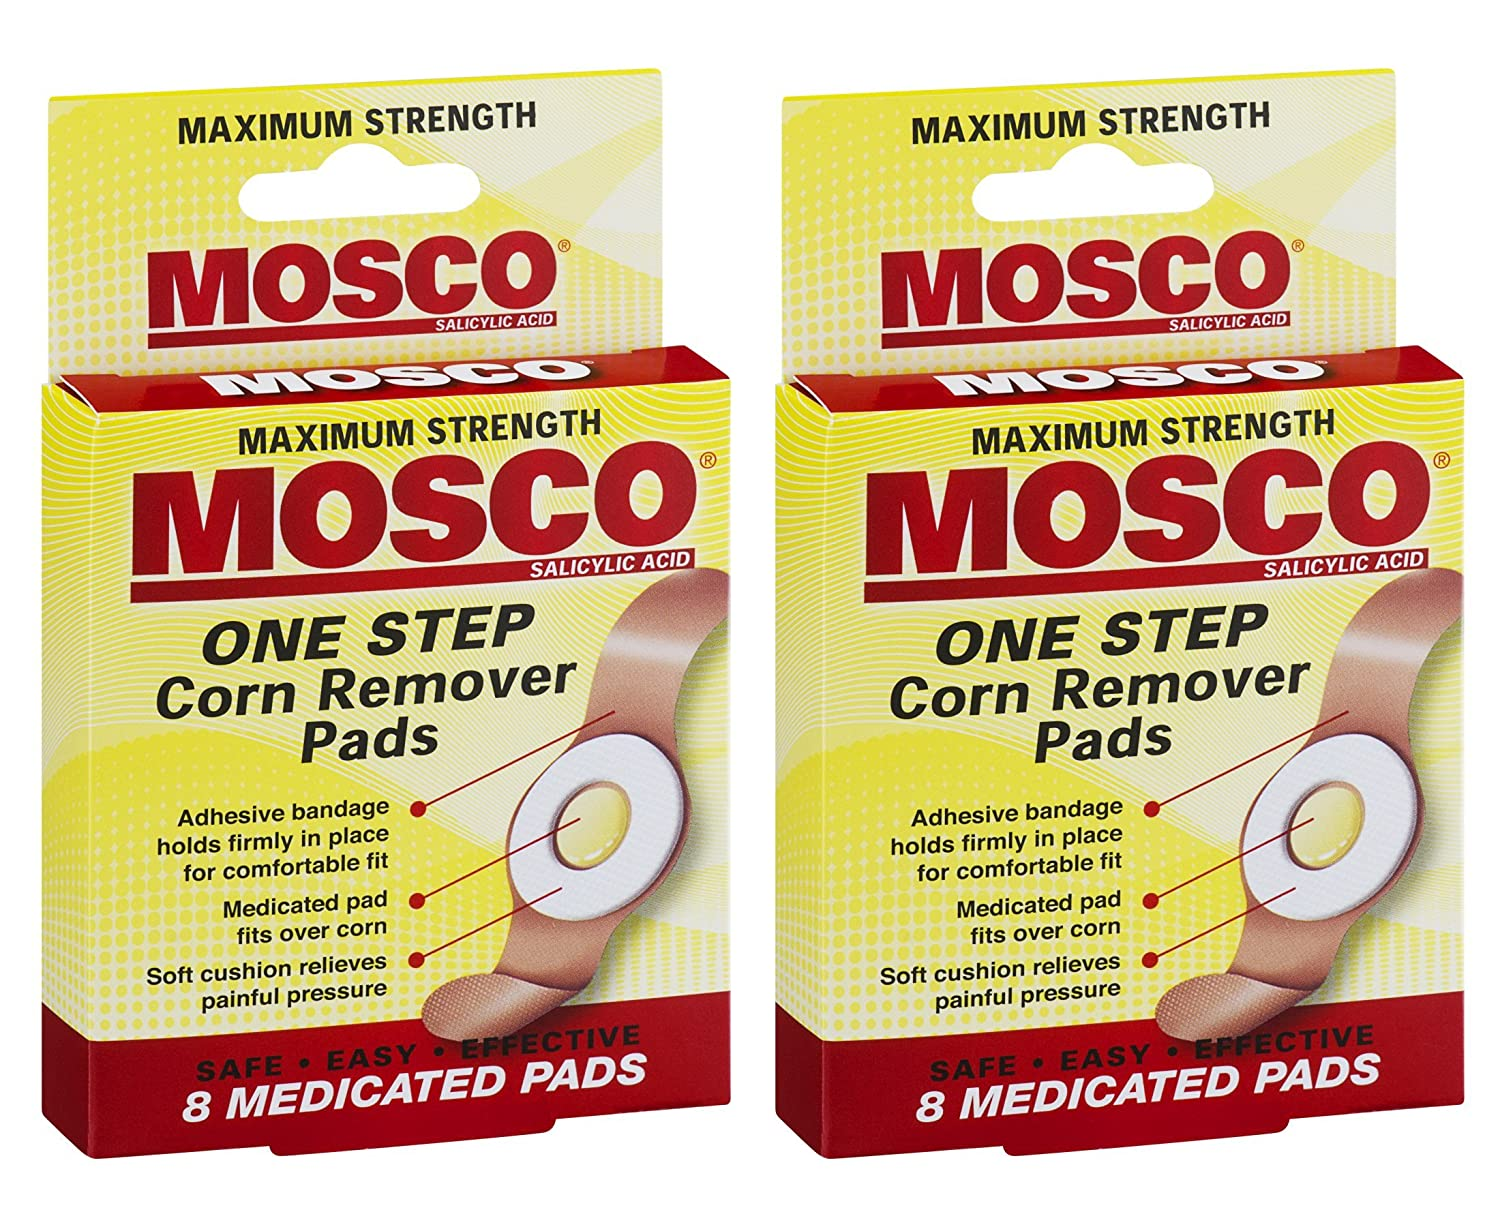 Mosco One Step Medicated Corn Remover Pads, Maximum Strength, 8-Count per Pack (2-Packs) : Beauty